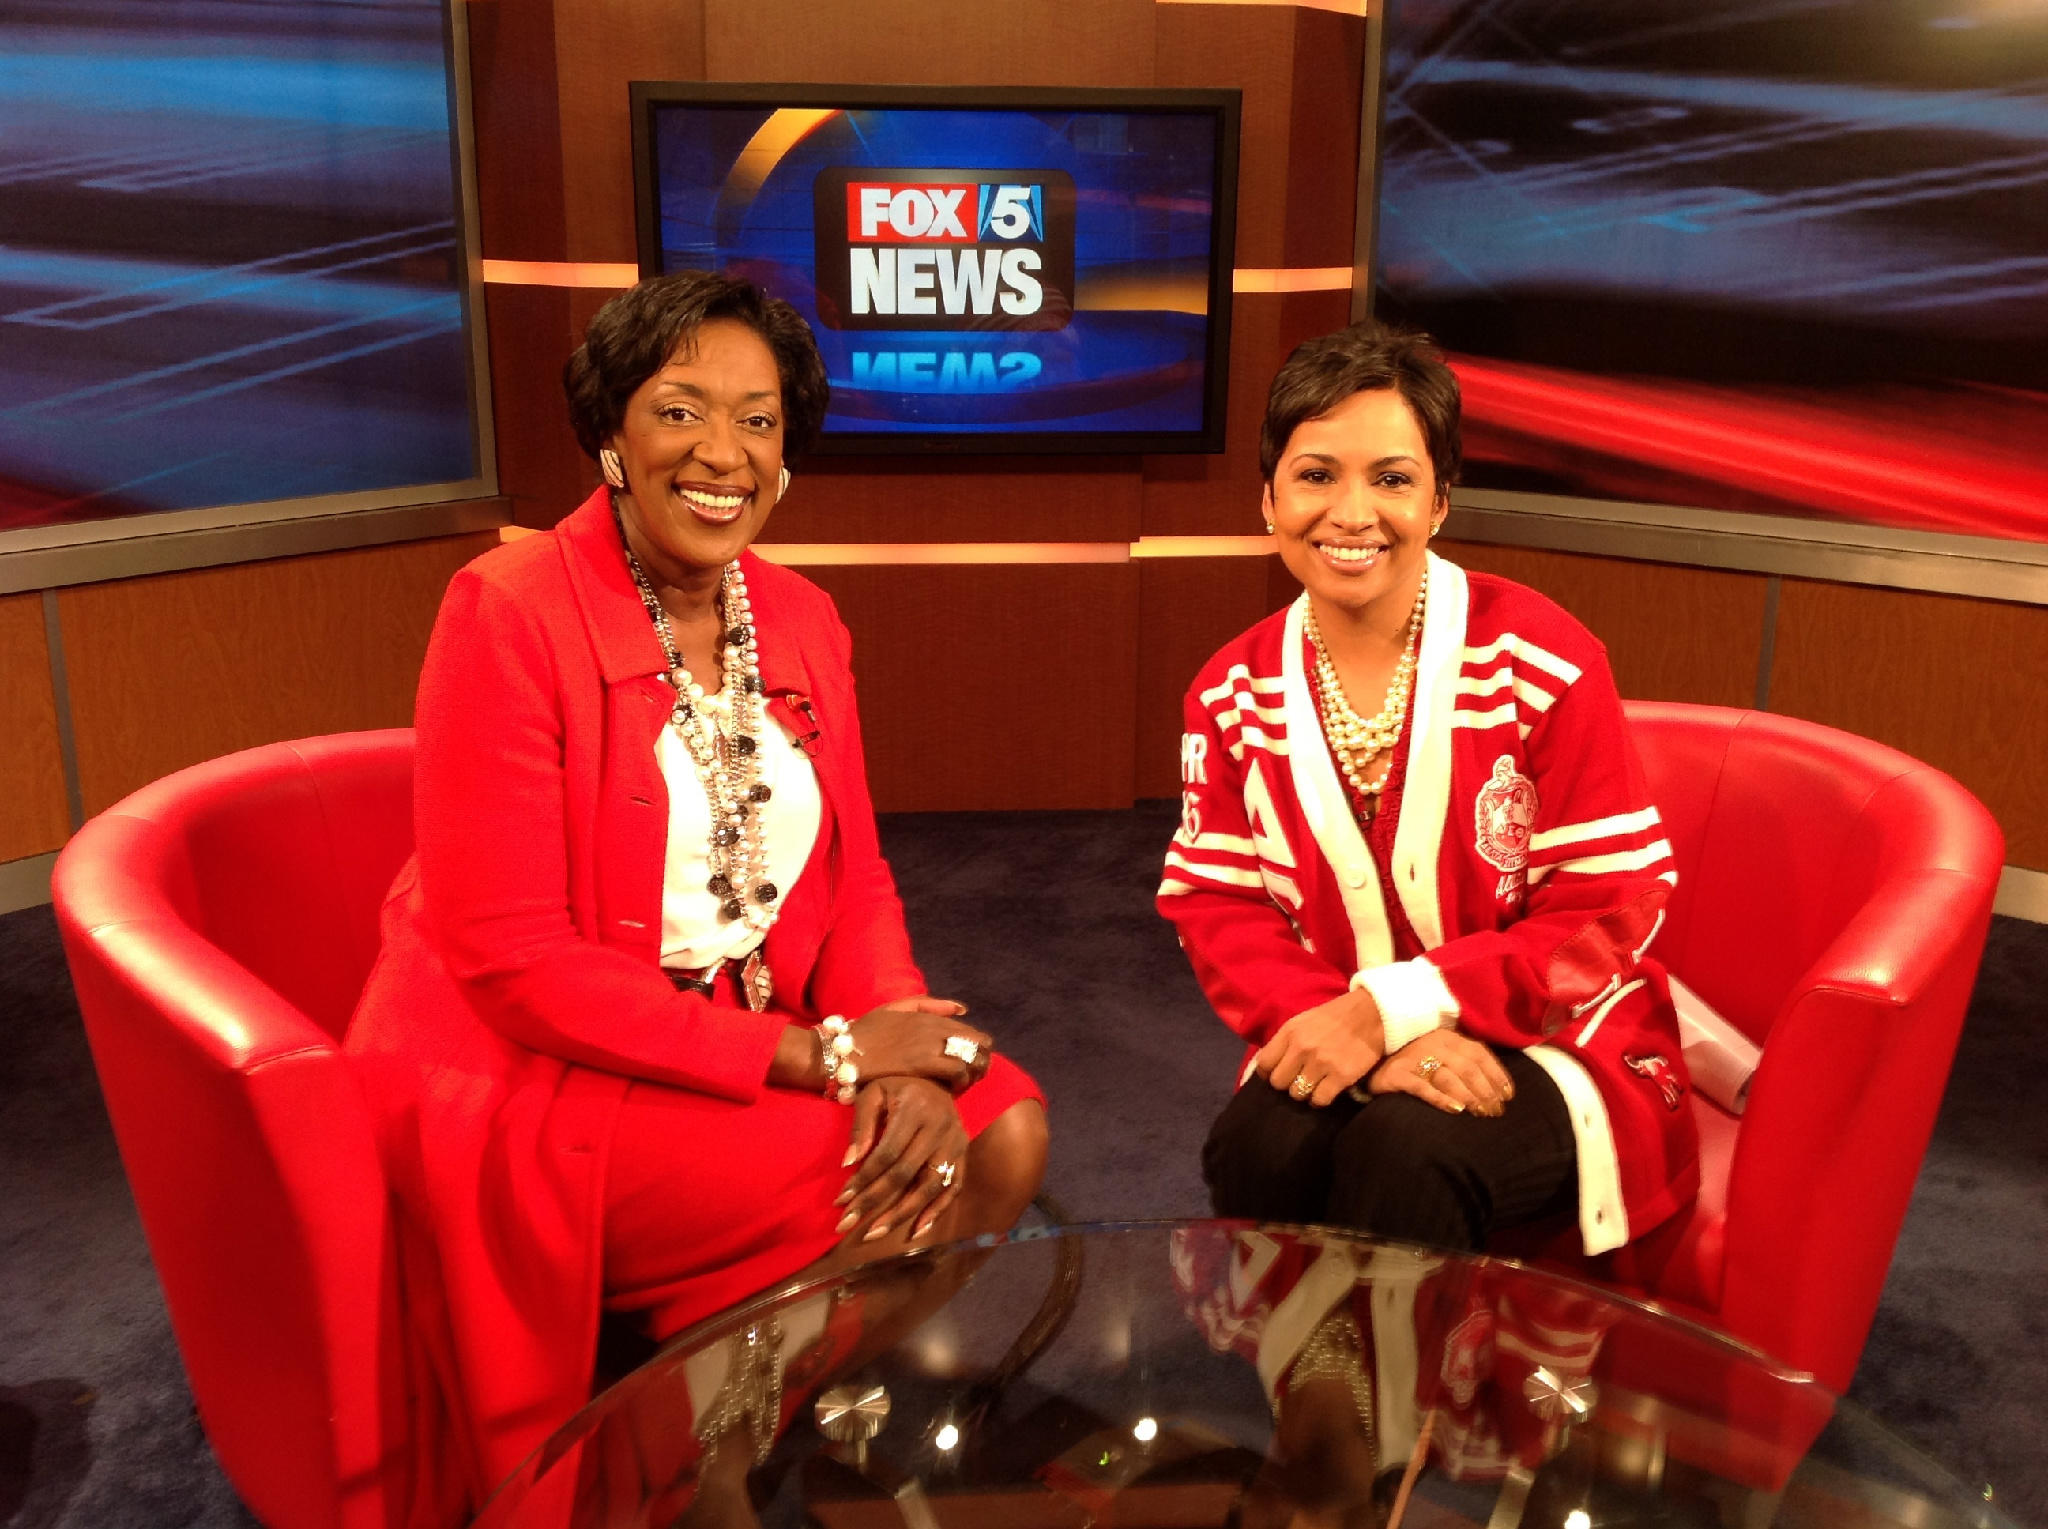 Delta sigma theta on twitter did you notice soror - Delta sigma theta sorority cardigans ...